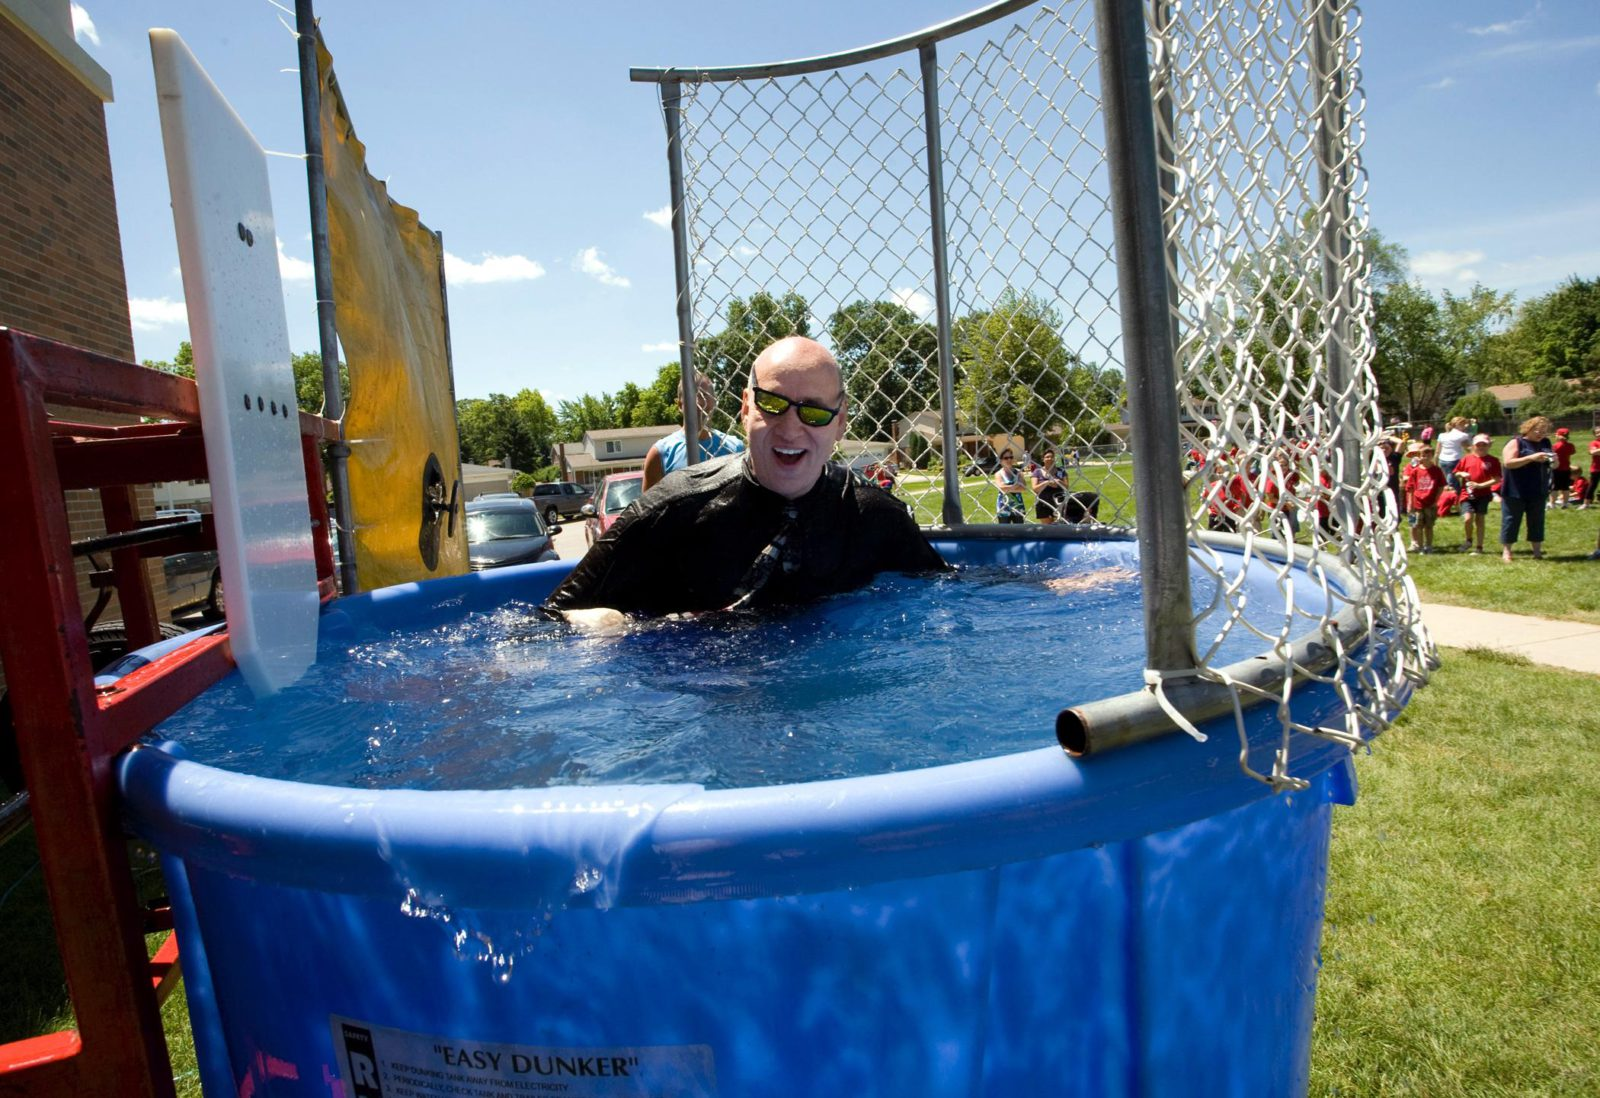 Downtown Portland's Dunk Tank Dynasty